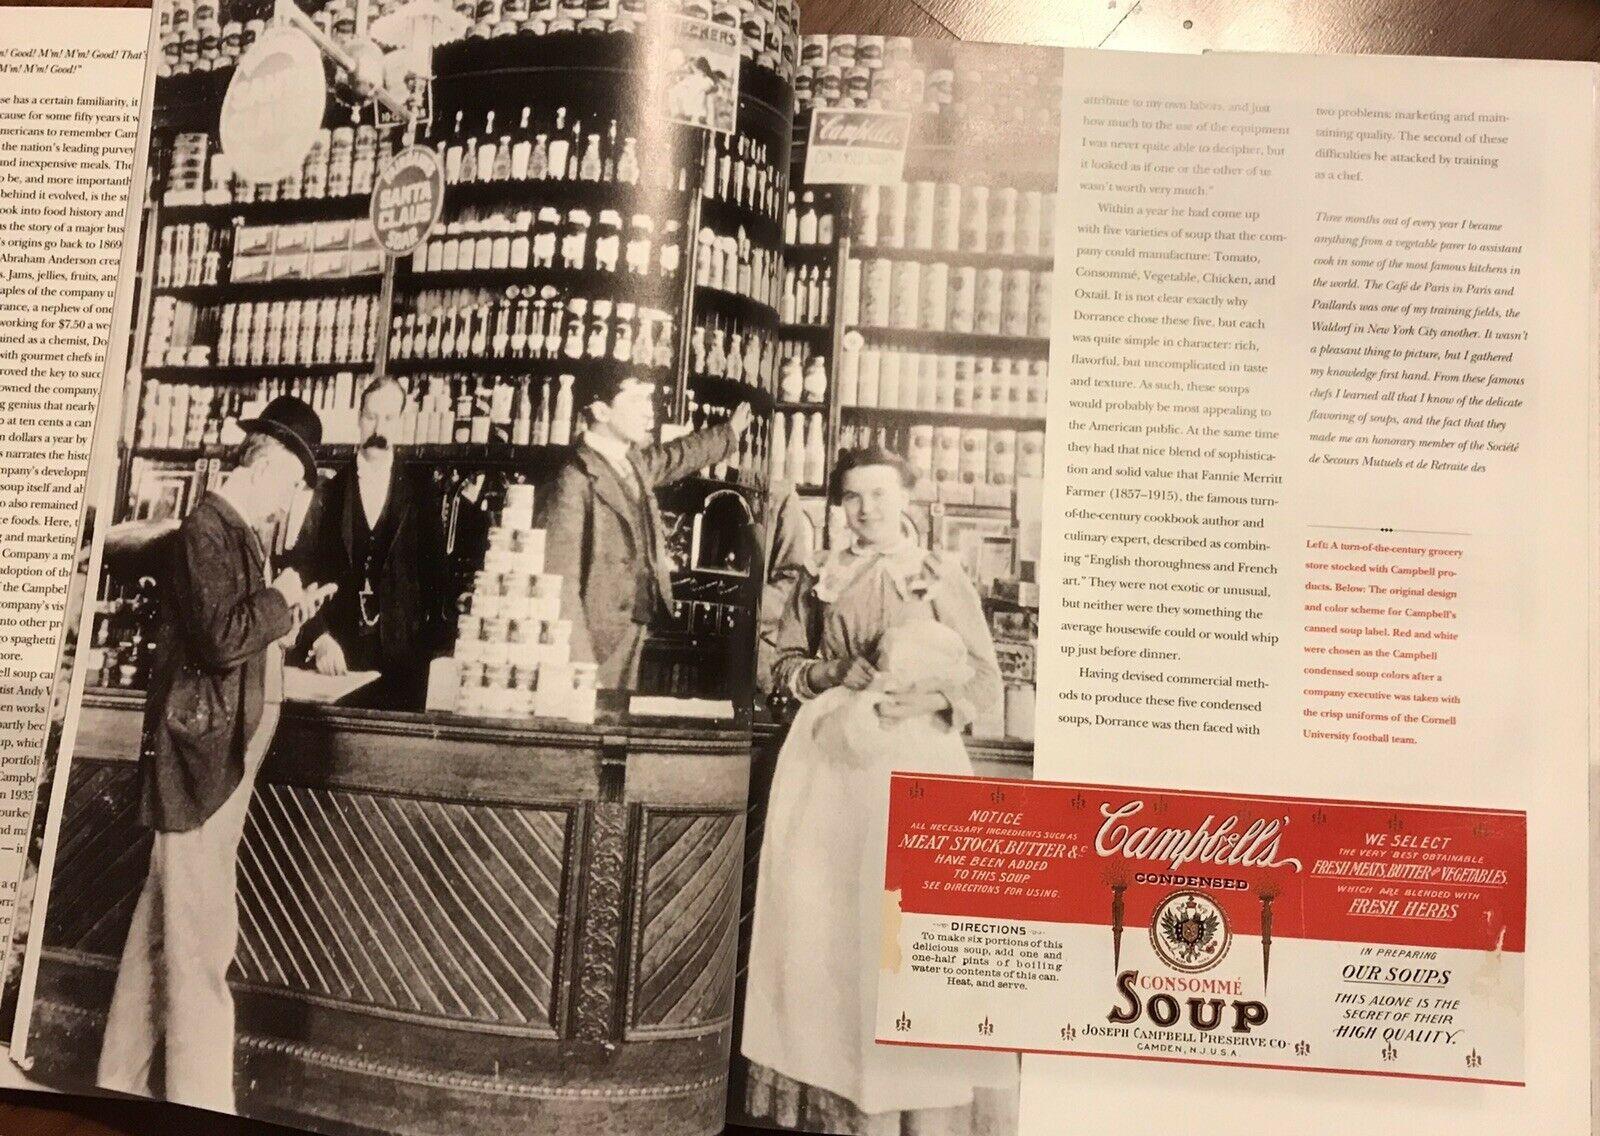 AMERICA'S FAVORITE FOOD THE STORY OF THE CAMPBELL SOUP COMPANY |